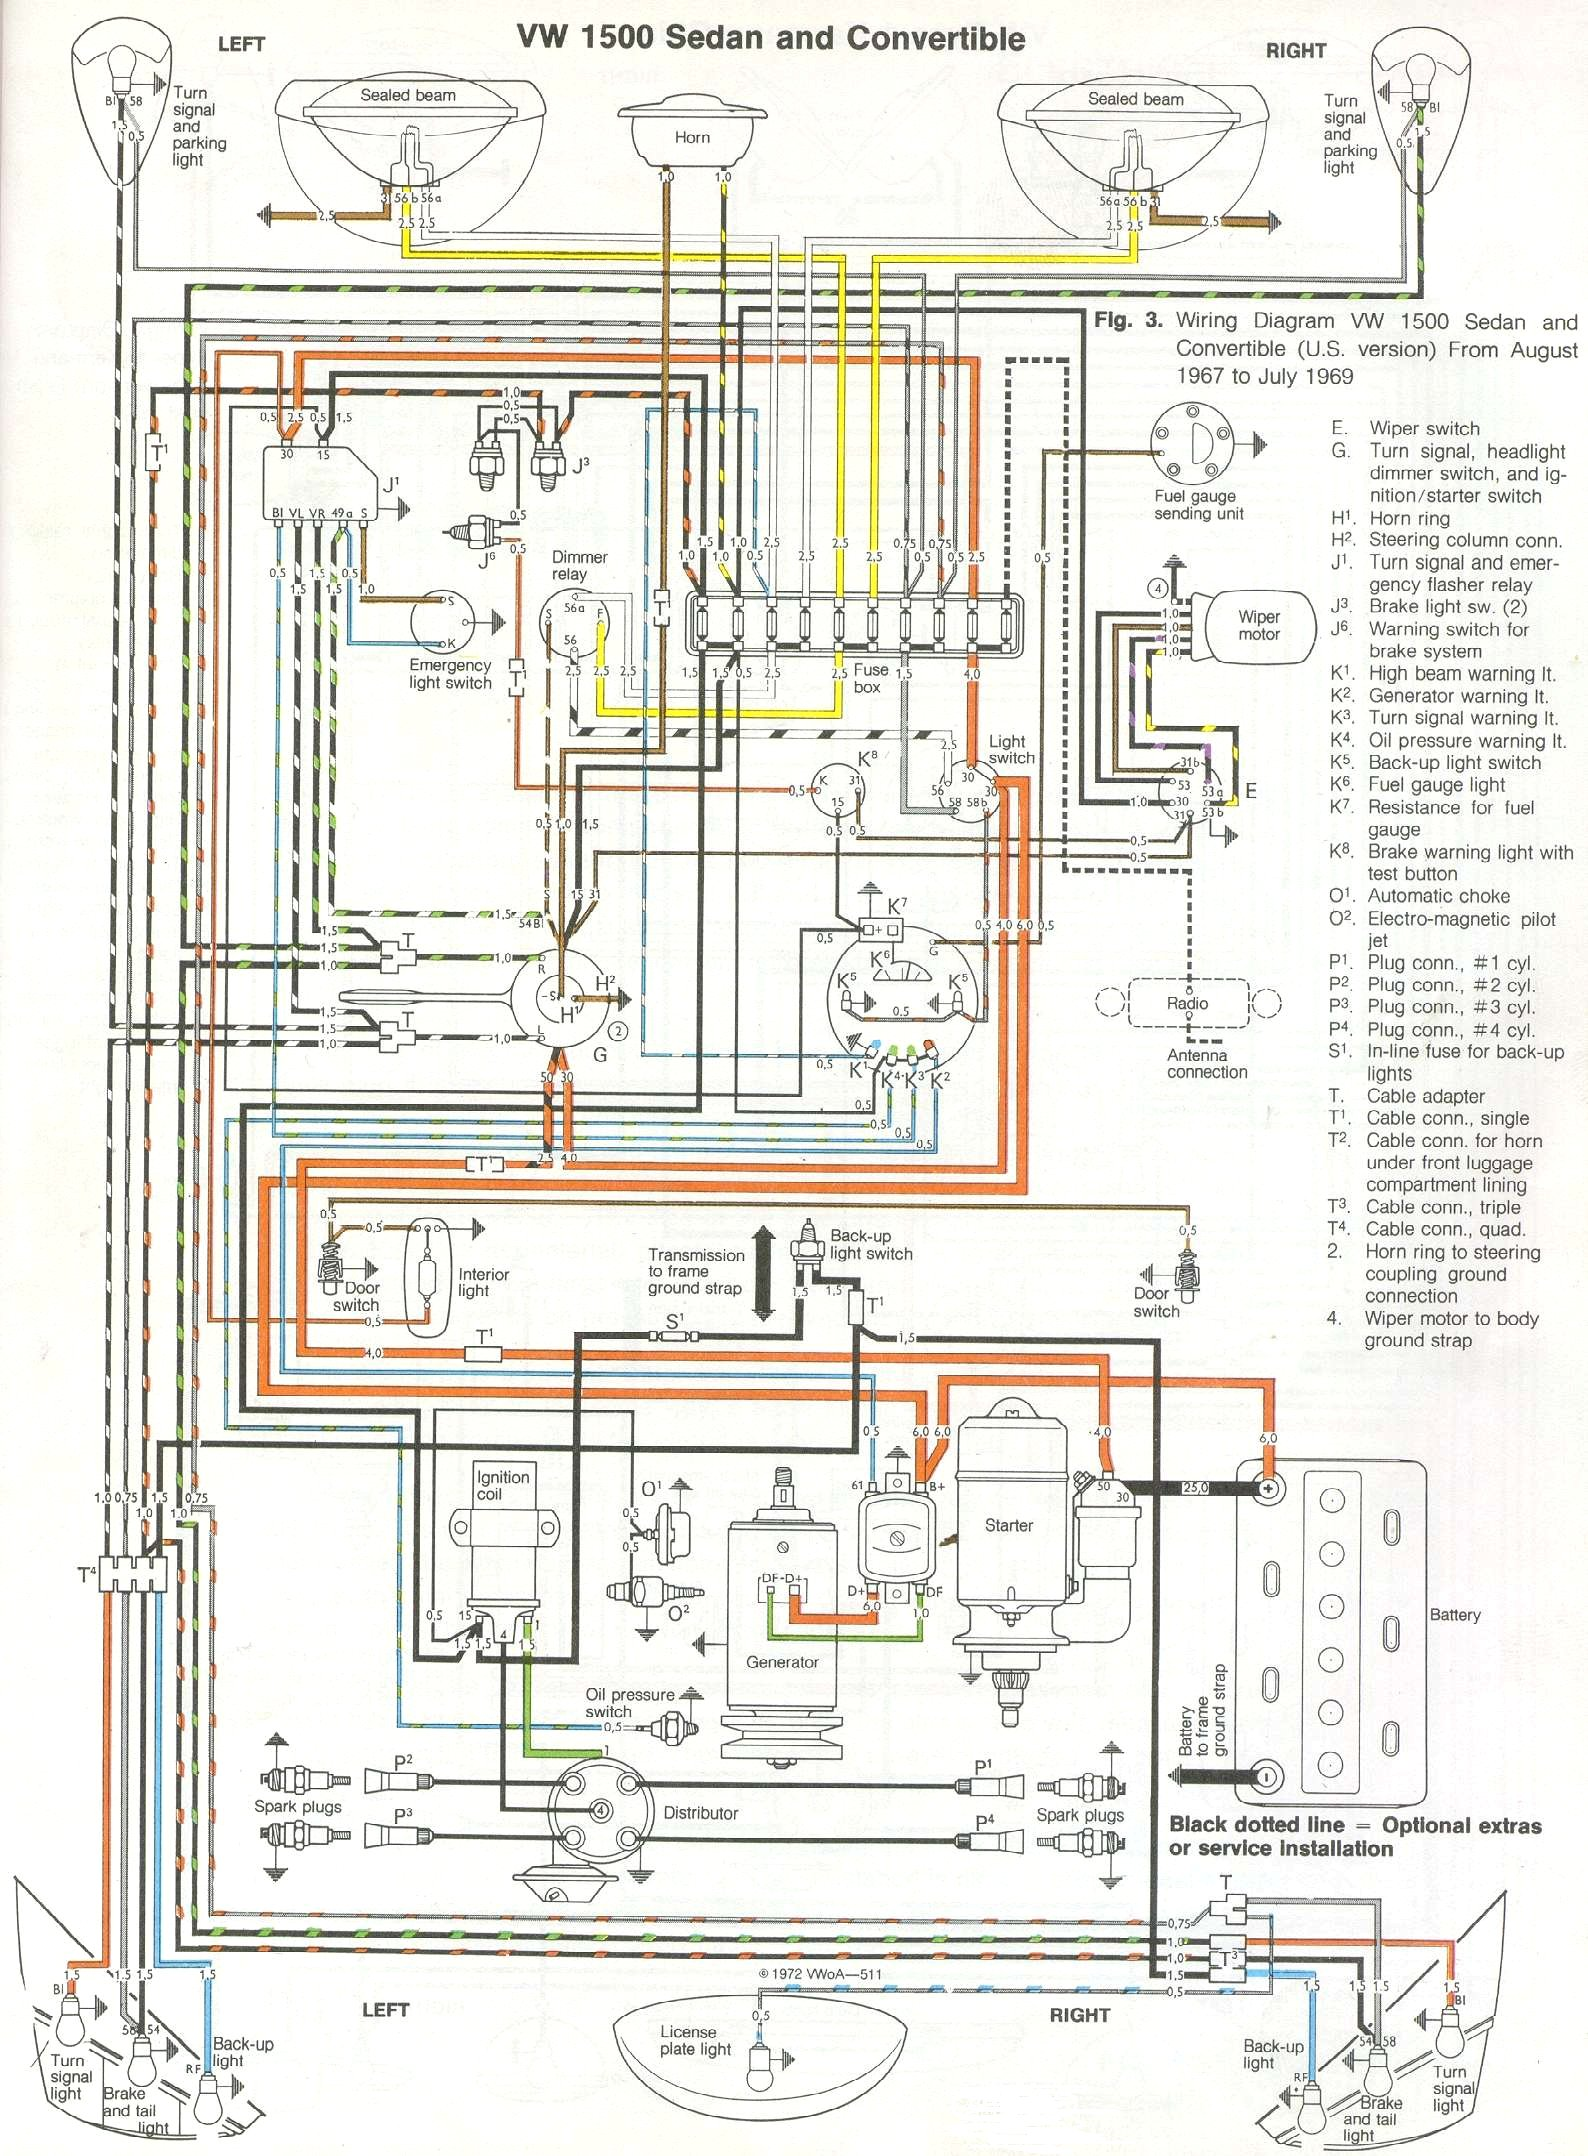 bug_6869 1969 71 beetle wiring diagram thegoldenbug com wiring diagram for 1972 vw beetle at sewacar.co